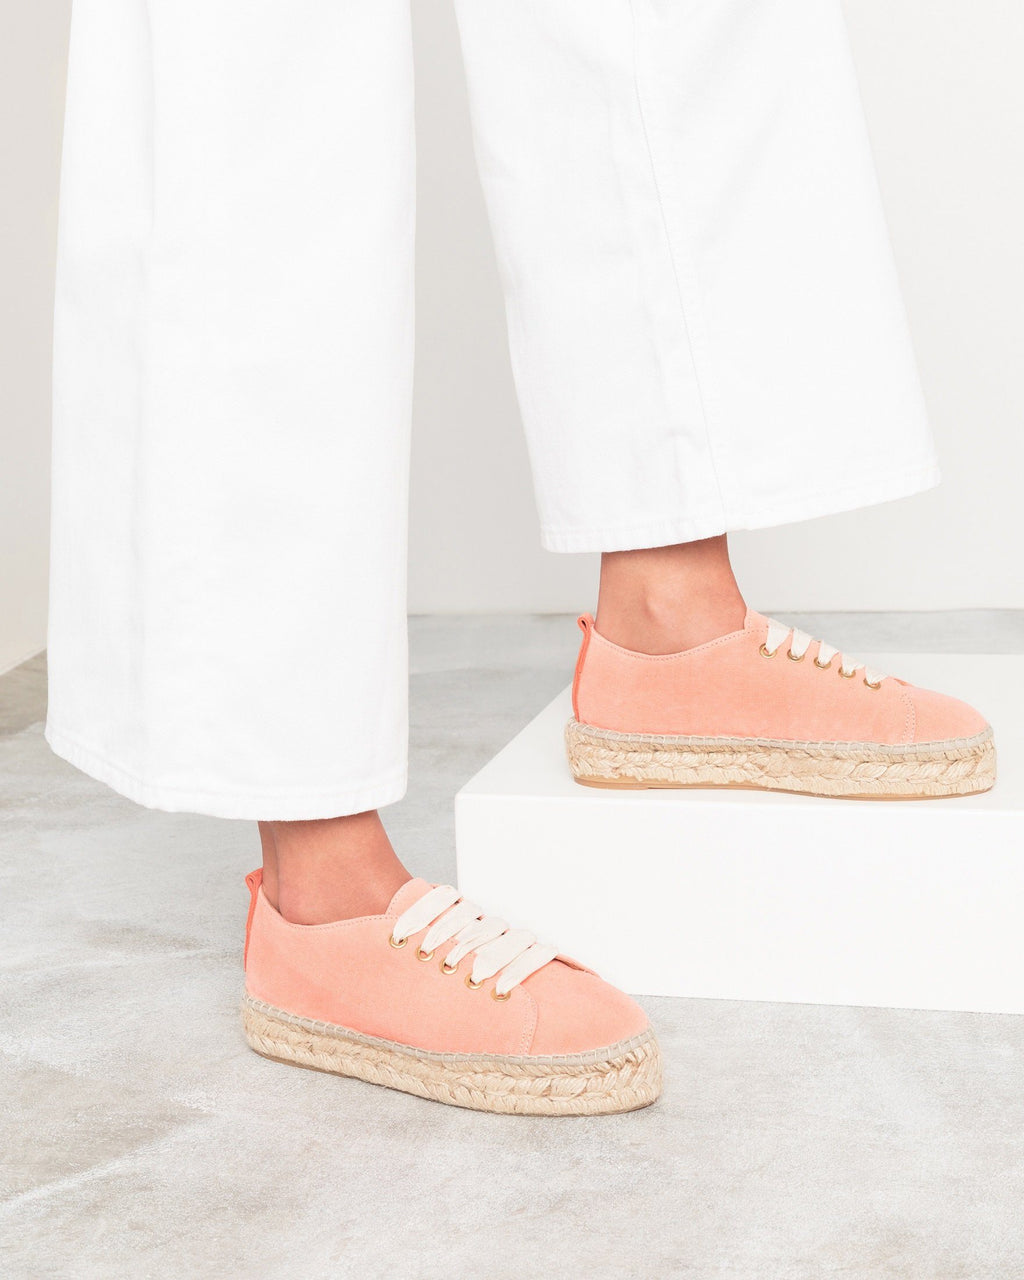 variant_1 | EN Nude Orange Espadrilles Low Sneakers Women JUTELAUNE | DE Nude Orange Espadrilles Low Sneakers Damen JUTELAUNE